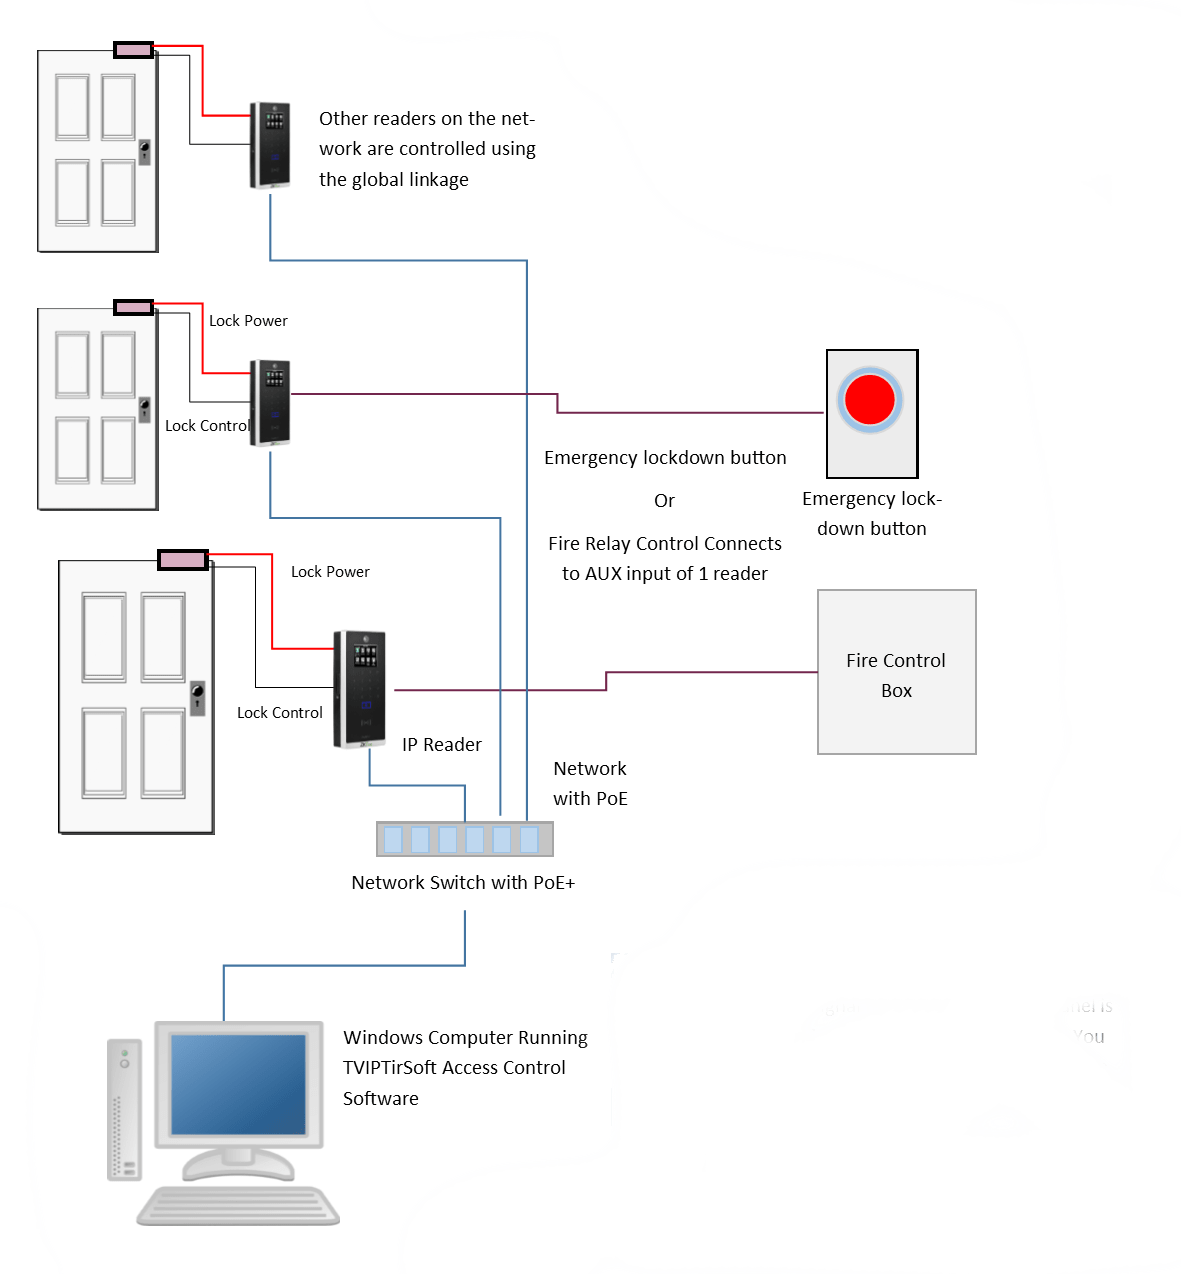 emergency door release wiring diagram brain without labels access control and fire alarm system integration kintronics